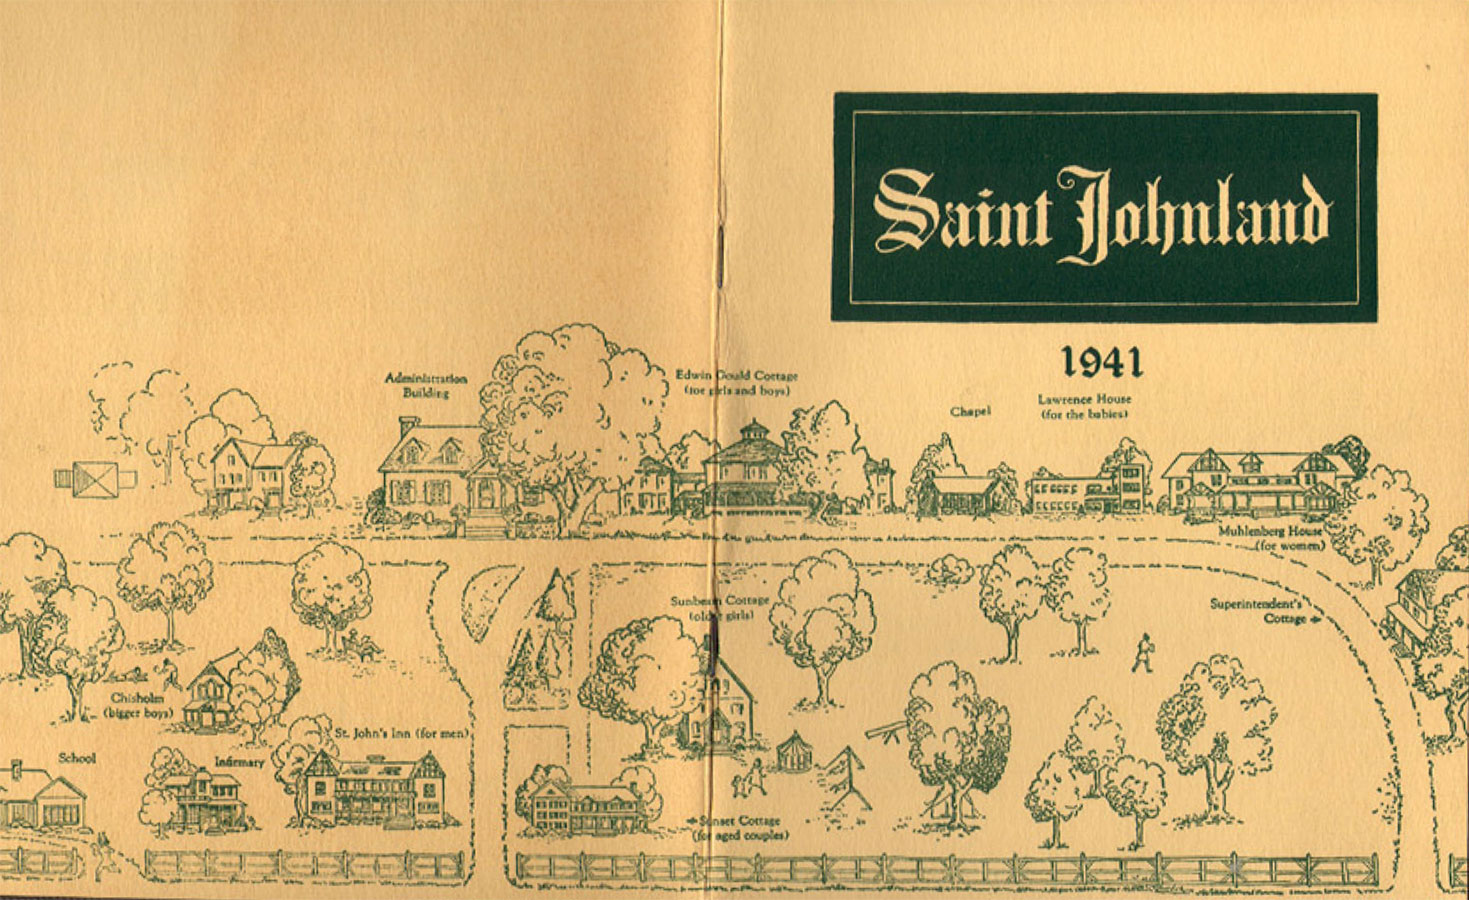 St. Johnland, an orphanage on Long Island